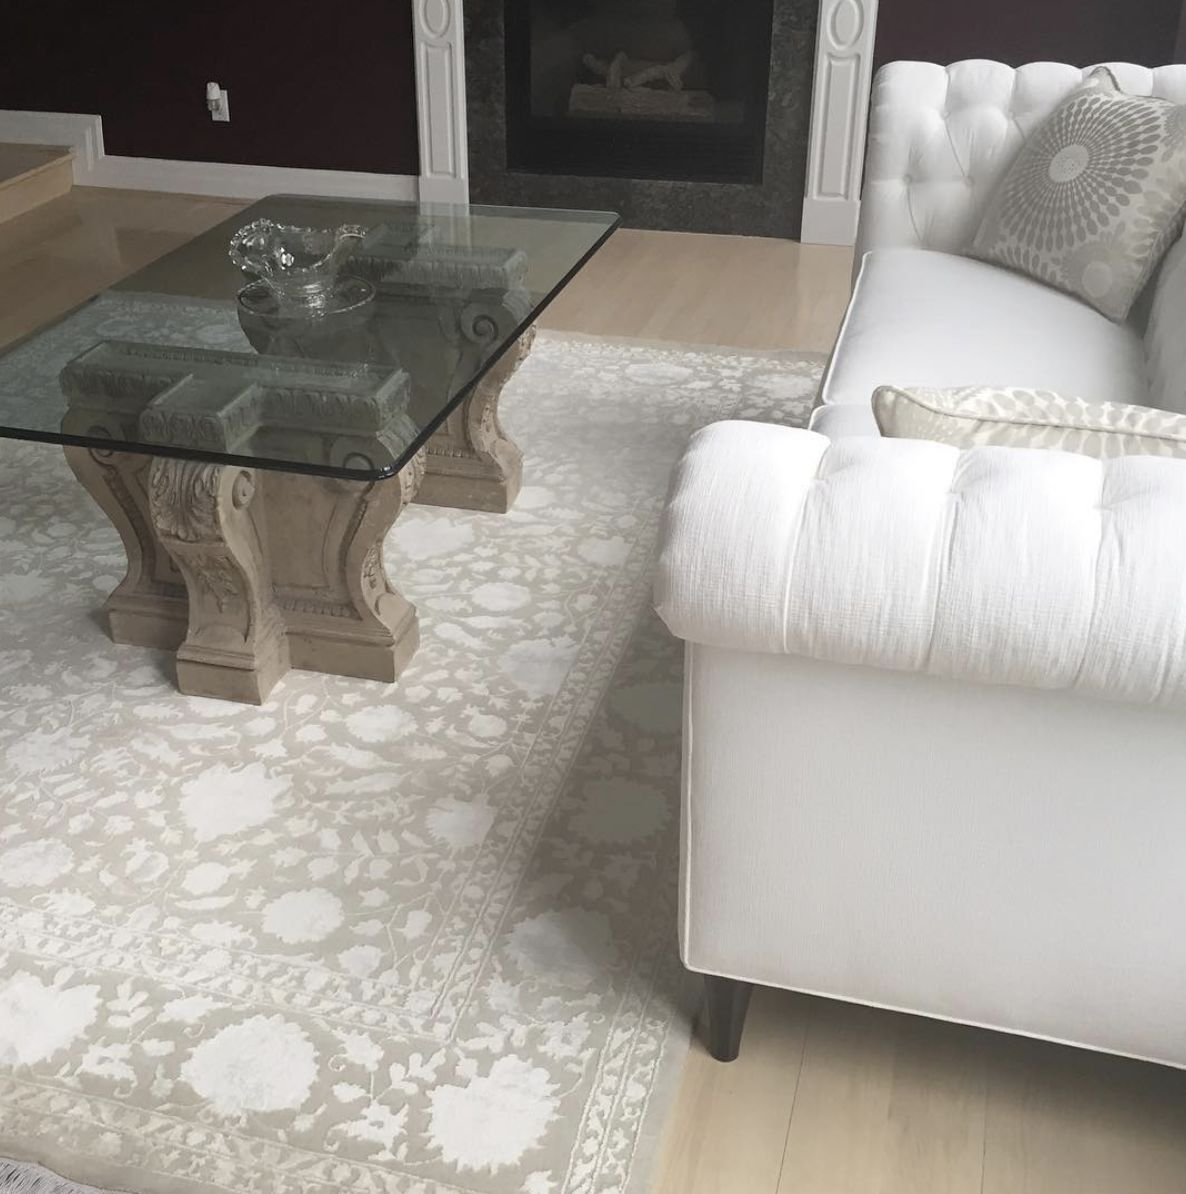 Amy review of Silk Flower Jaipur Rug